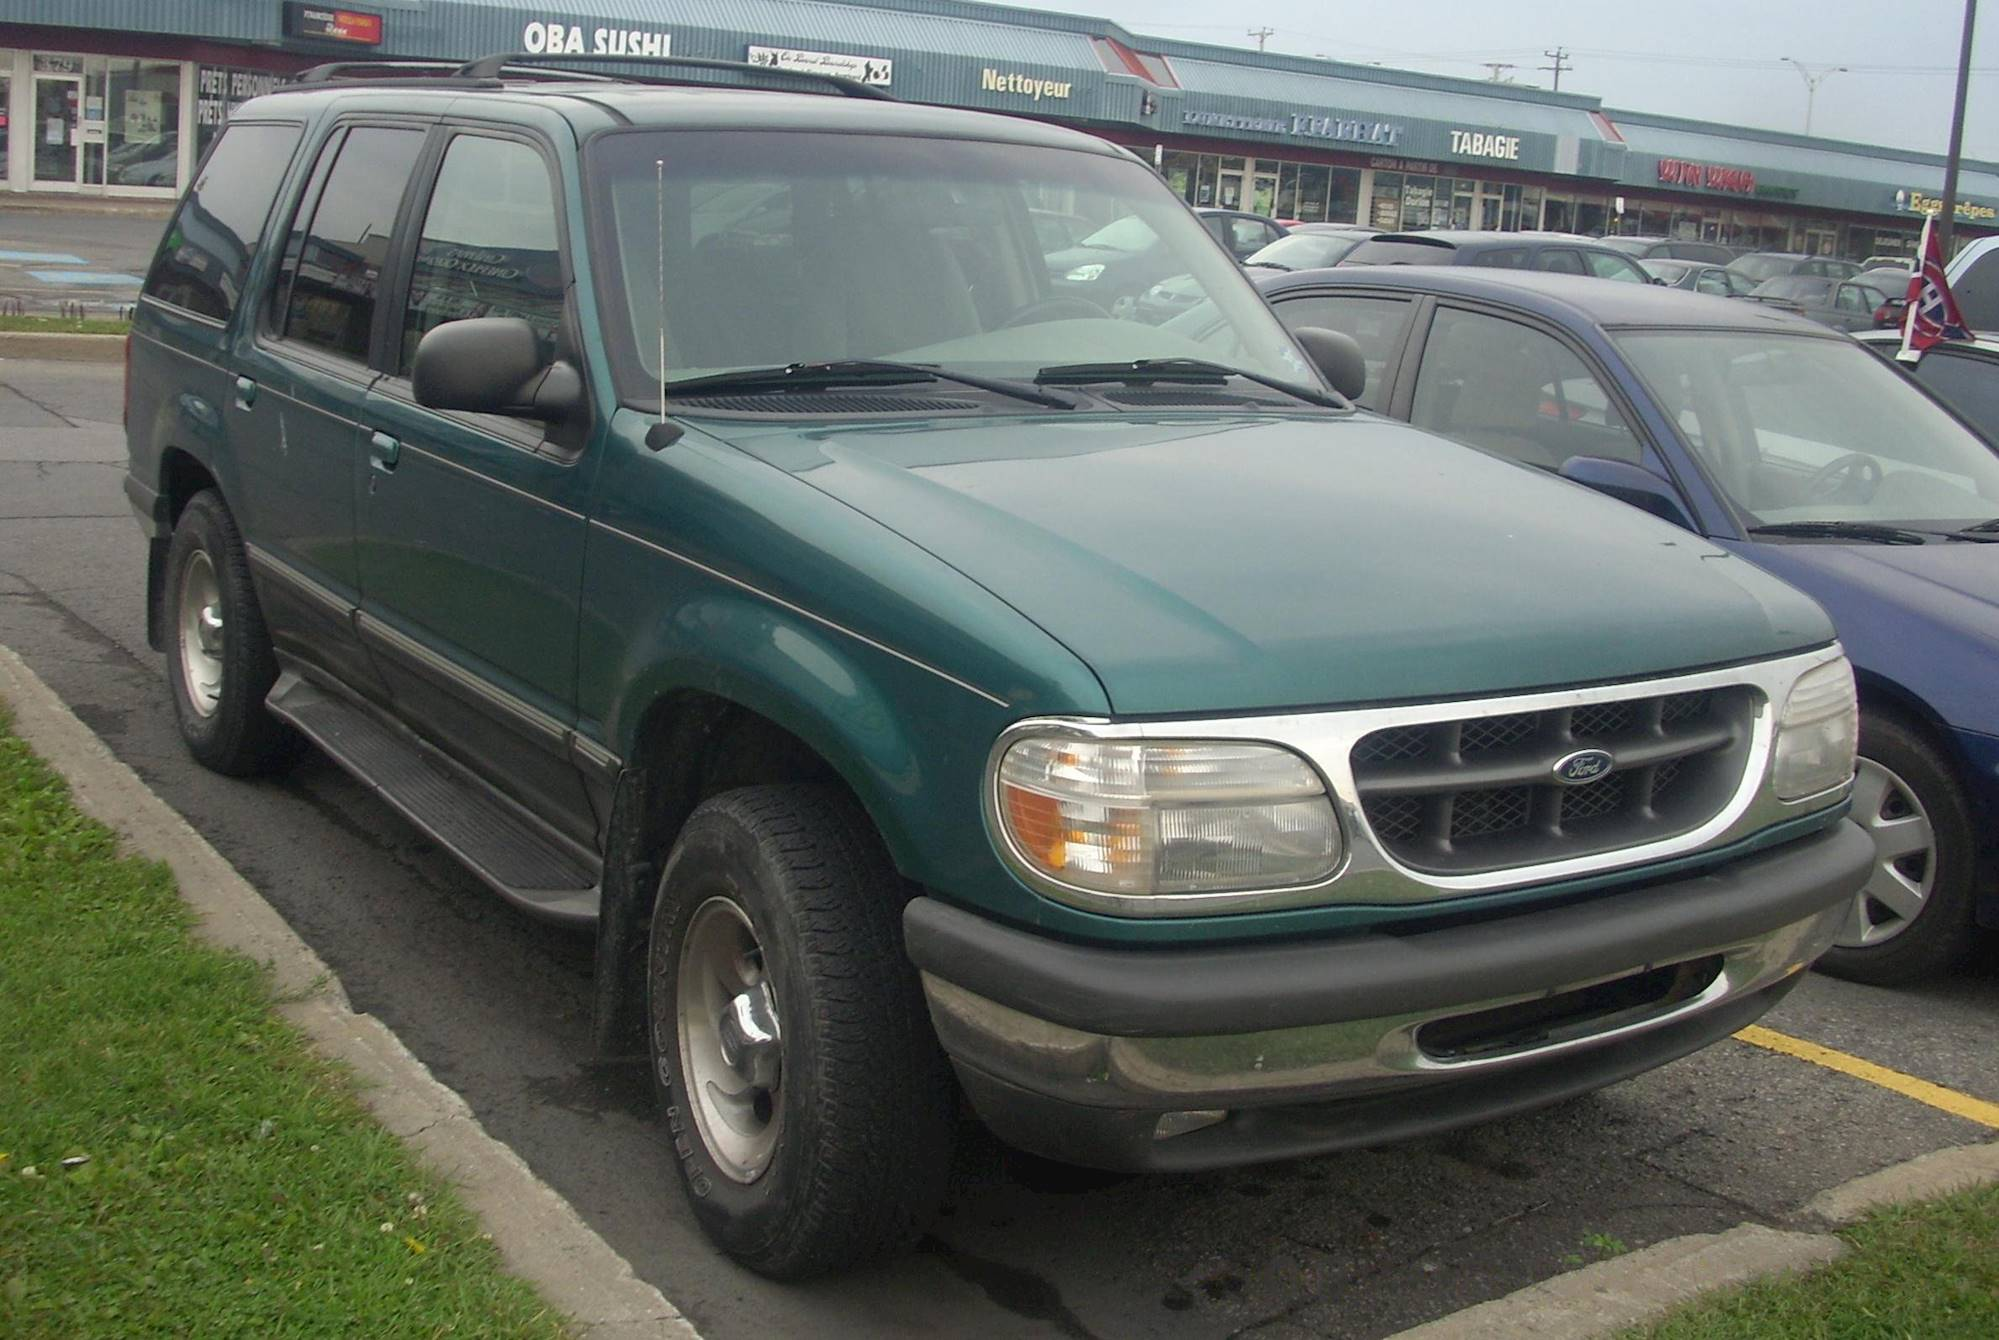 1996 ford explorer xlt 4dr suv 4 0l v6 manual